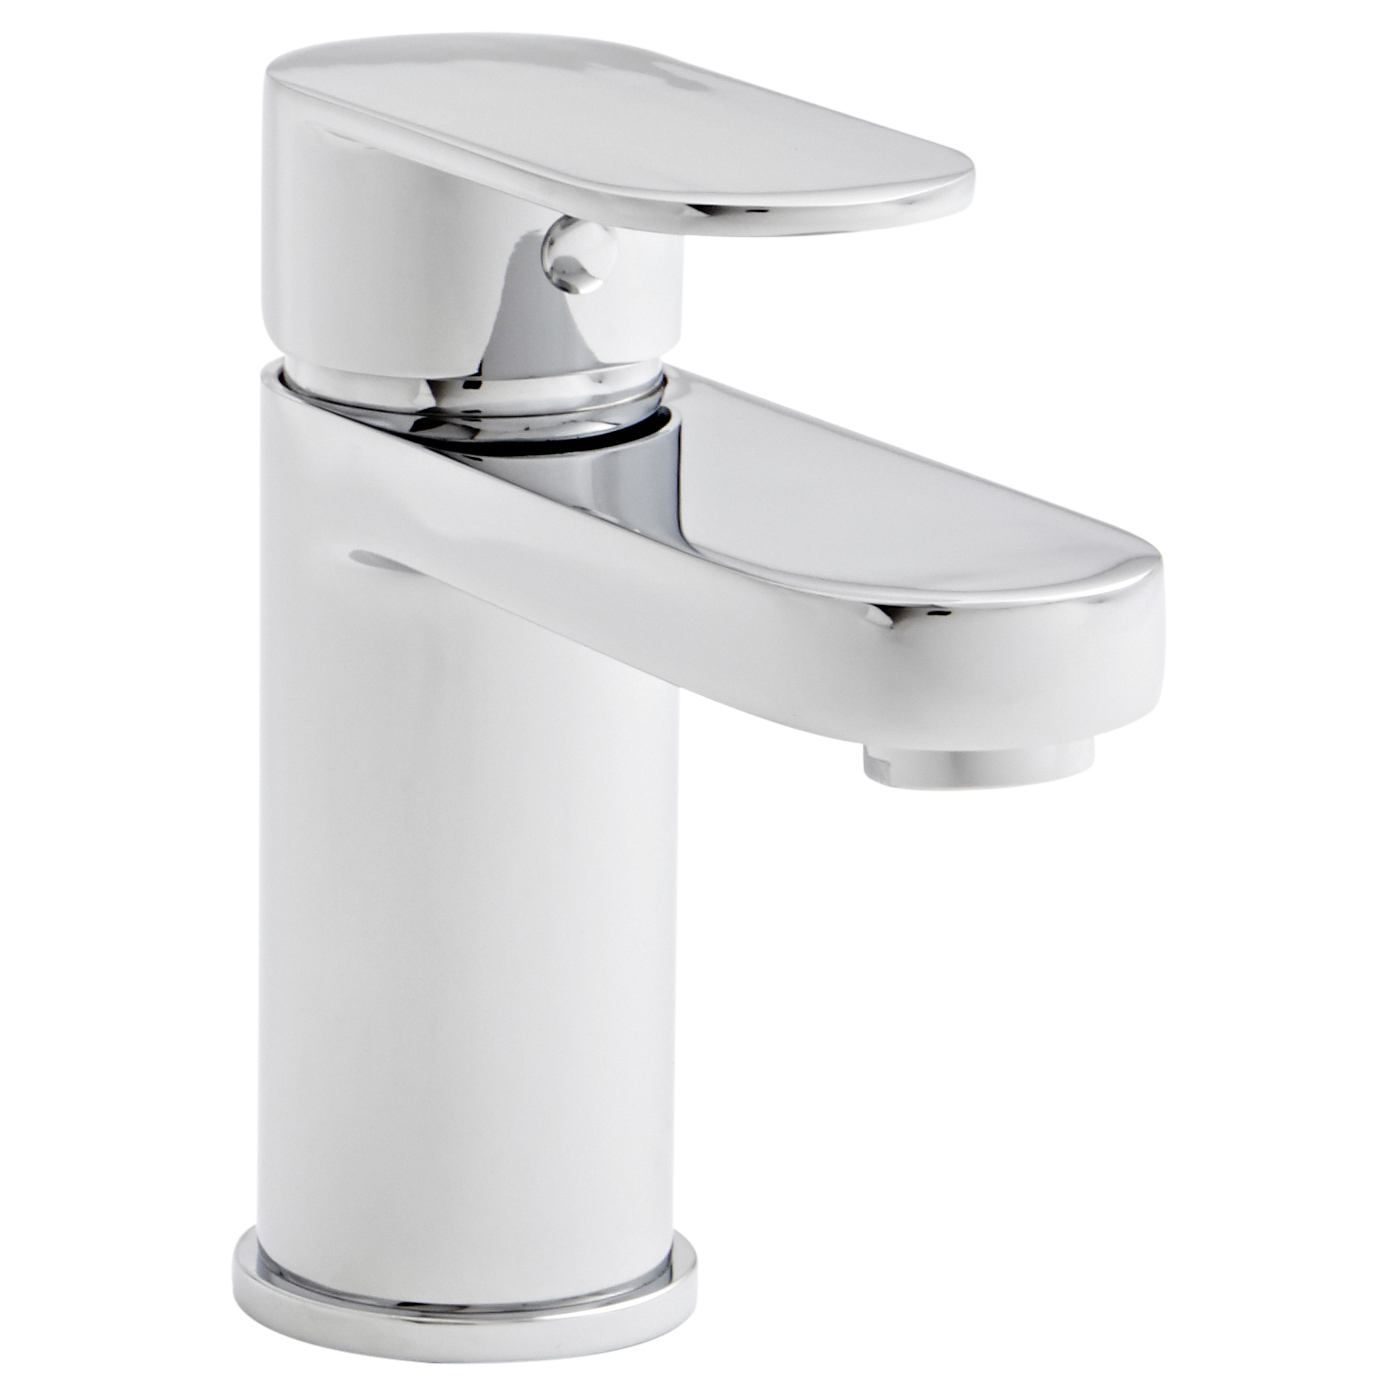 Prestige Grenada Mono Basin Mixer Tap with Click Waste Single Handle - Chrome-0